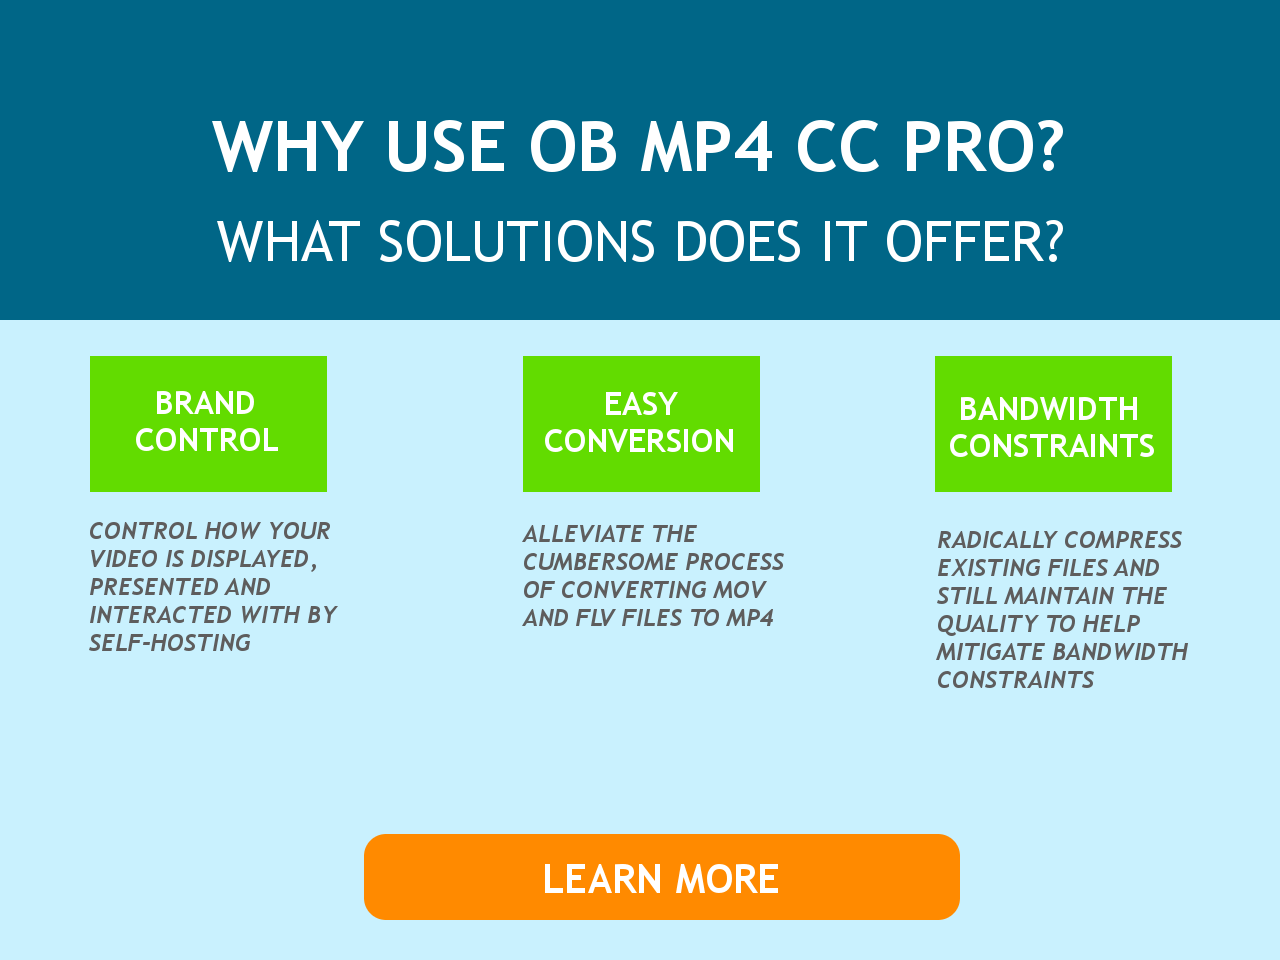 Why OB MP4 CC?